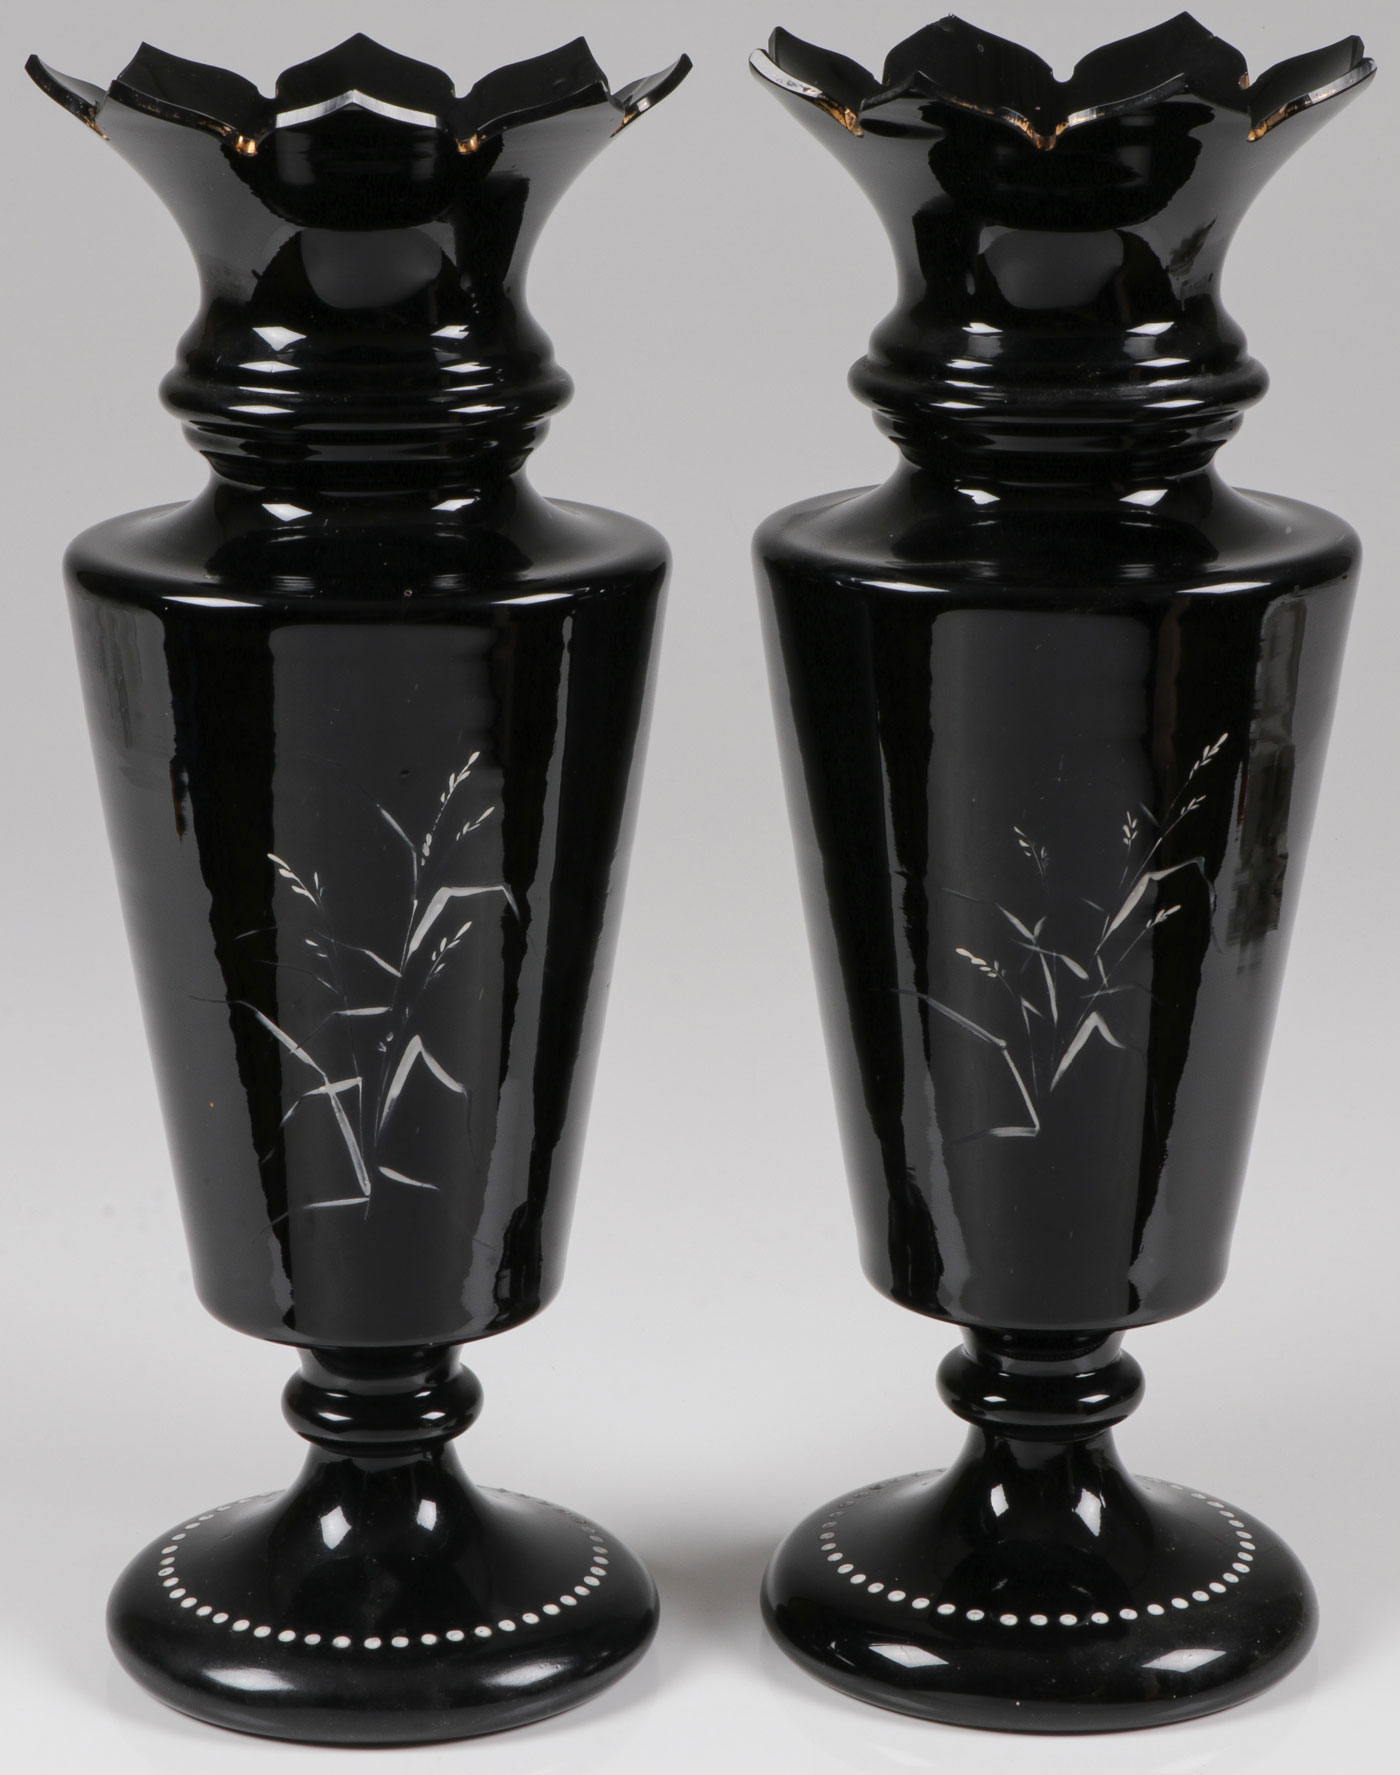 Lot 49 - EXCEPTIONAL PAIR MARY GREGORY VASES, C. 1890